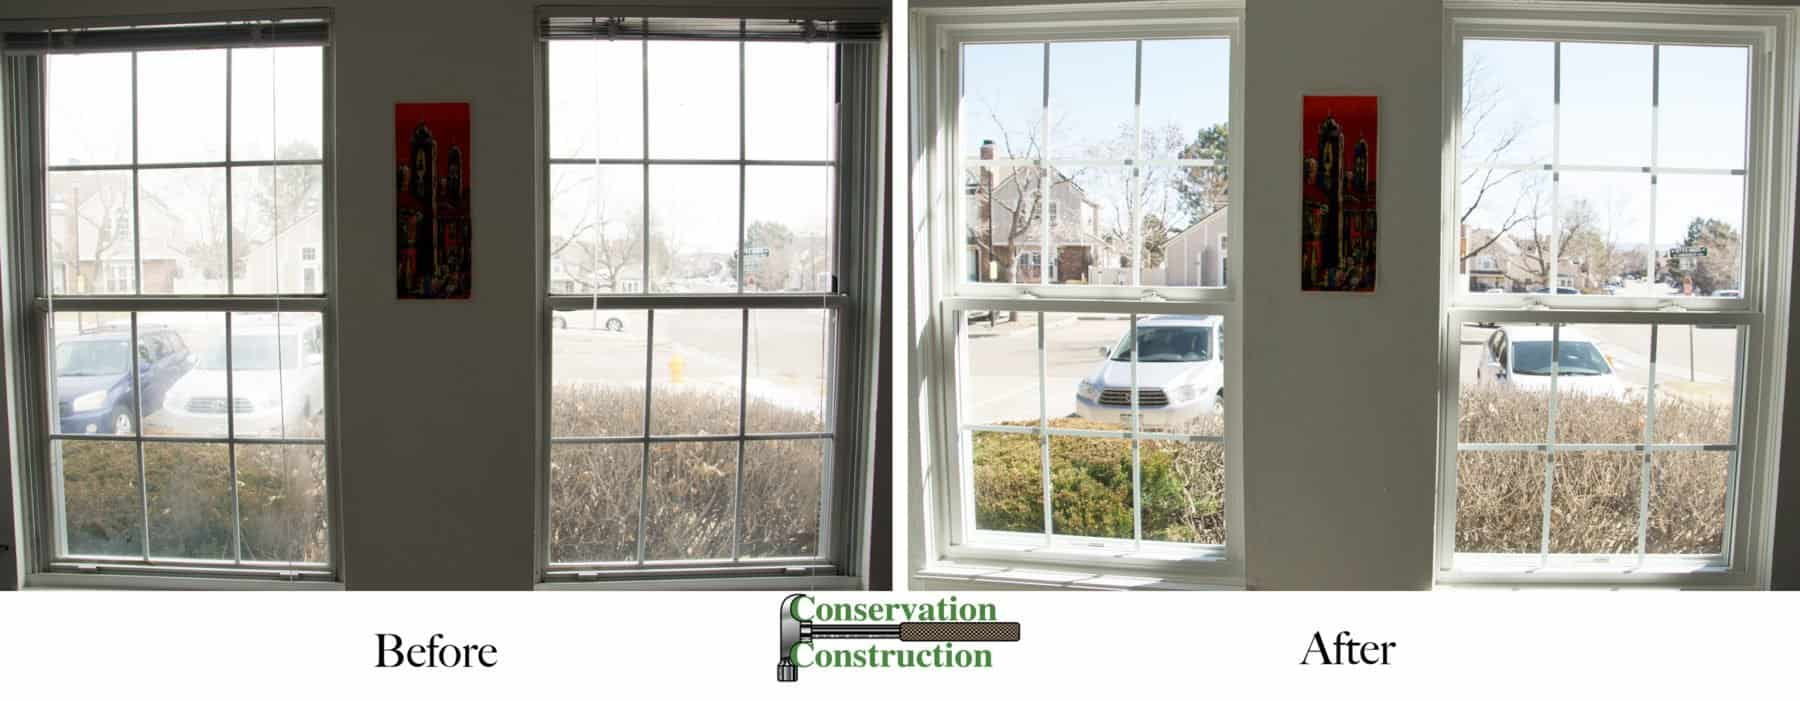 Conservation Construction, New Windows, Window Replacement